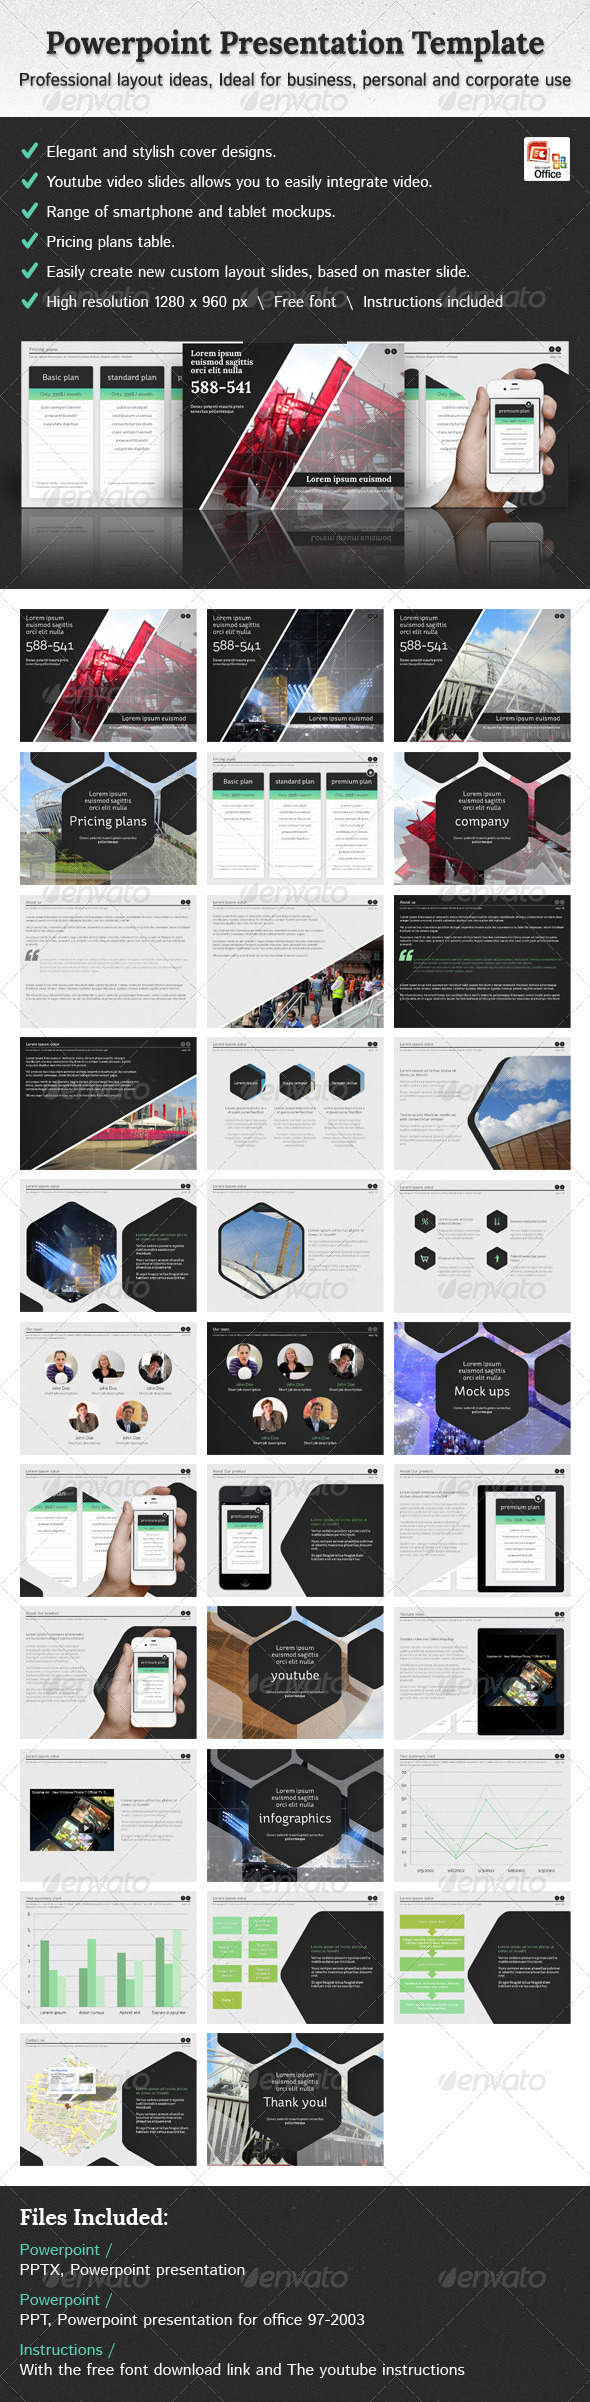 Hexagon - Powerpoint Presentation Template - Powerpoint Templates Presentation Templates